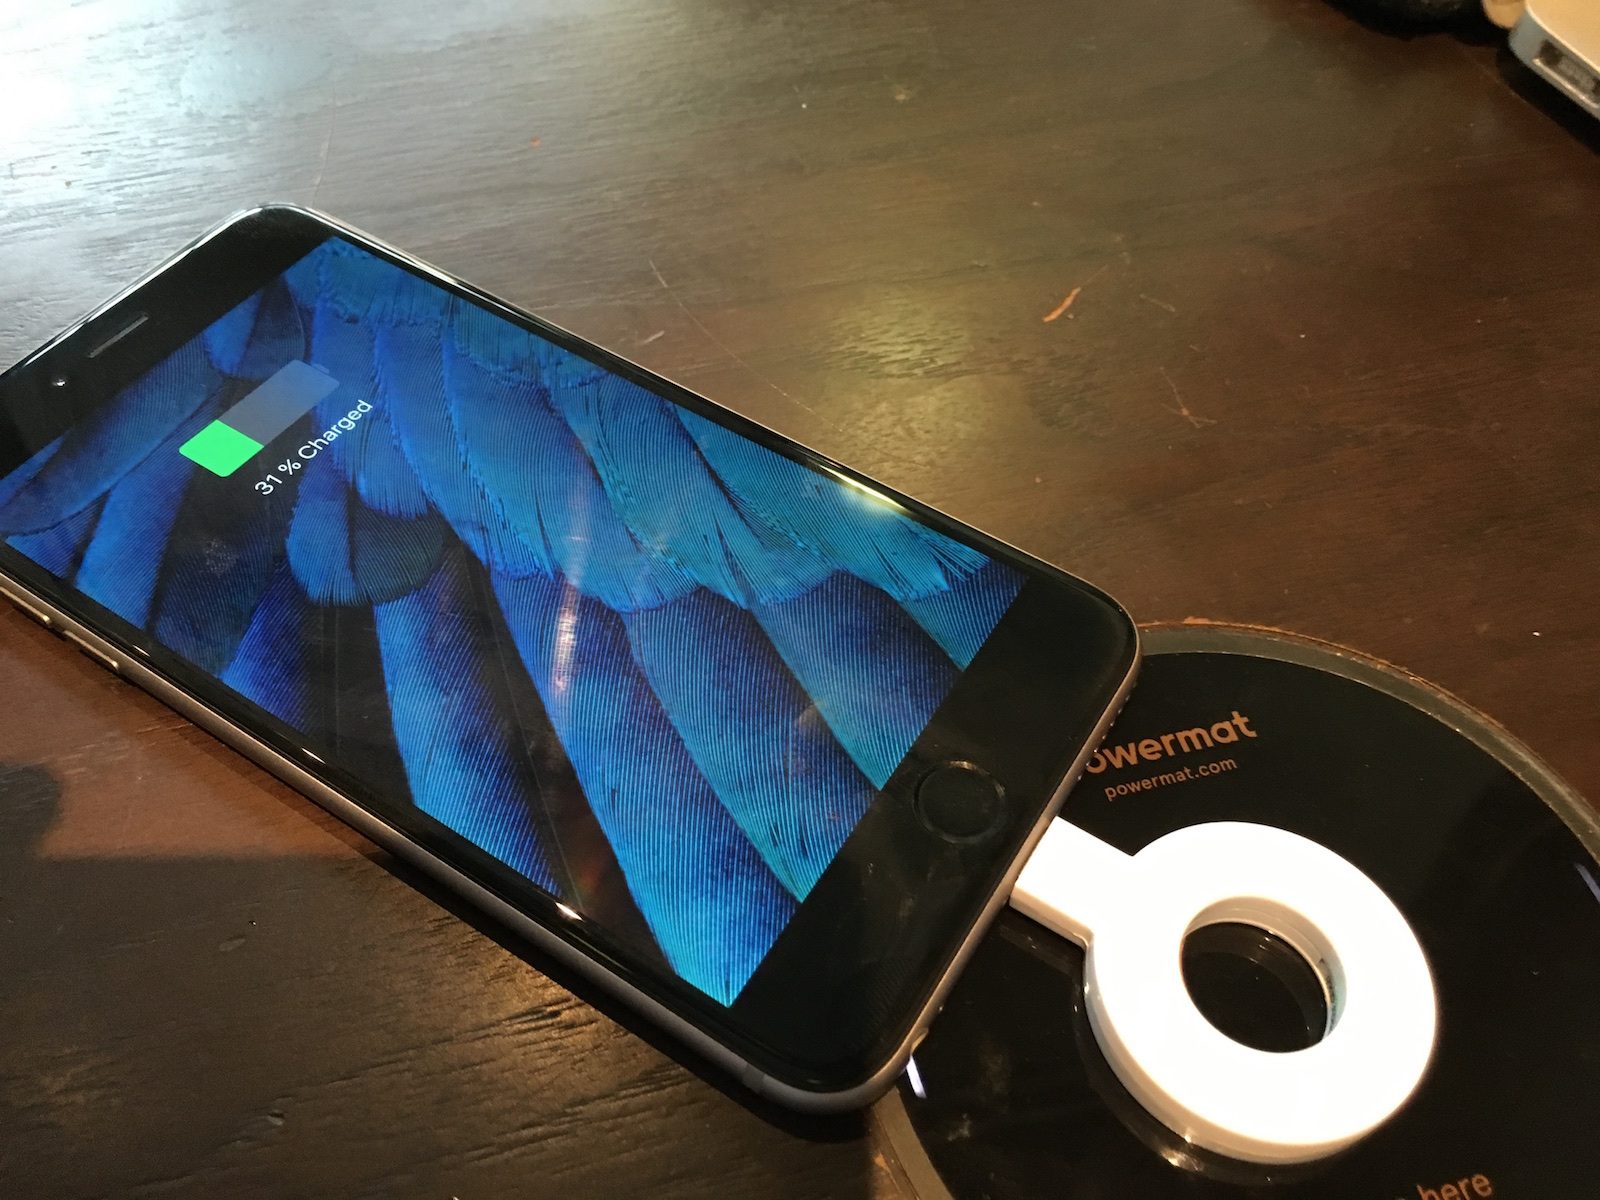 powermat wireless charging - charging the iPhone